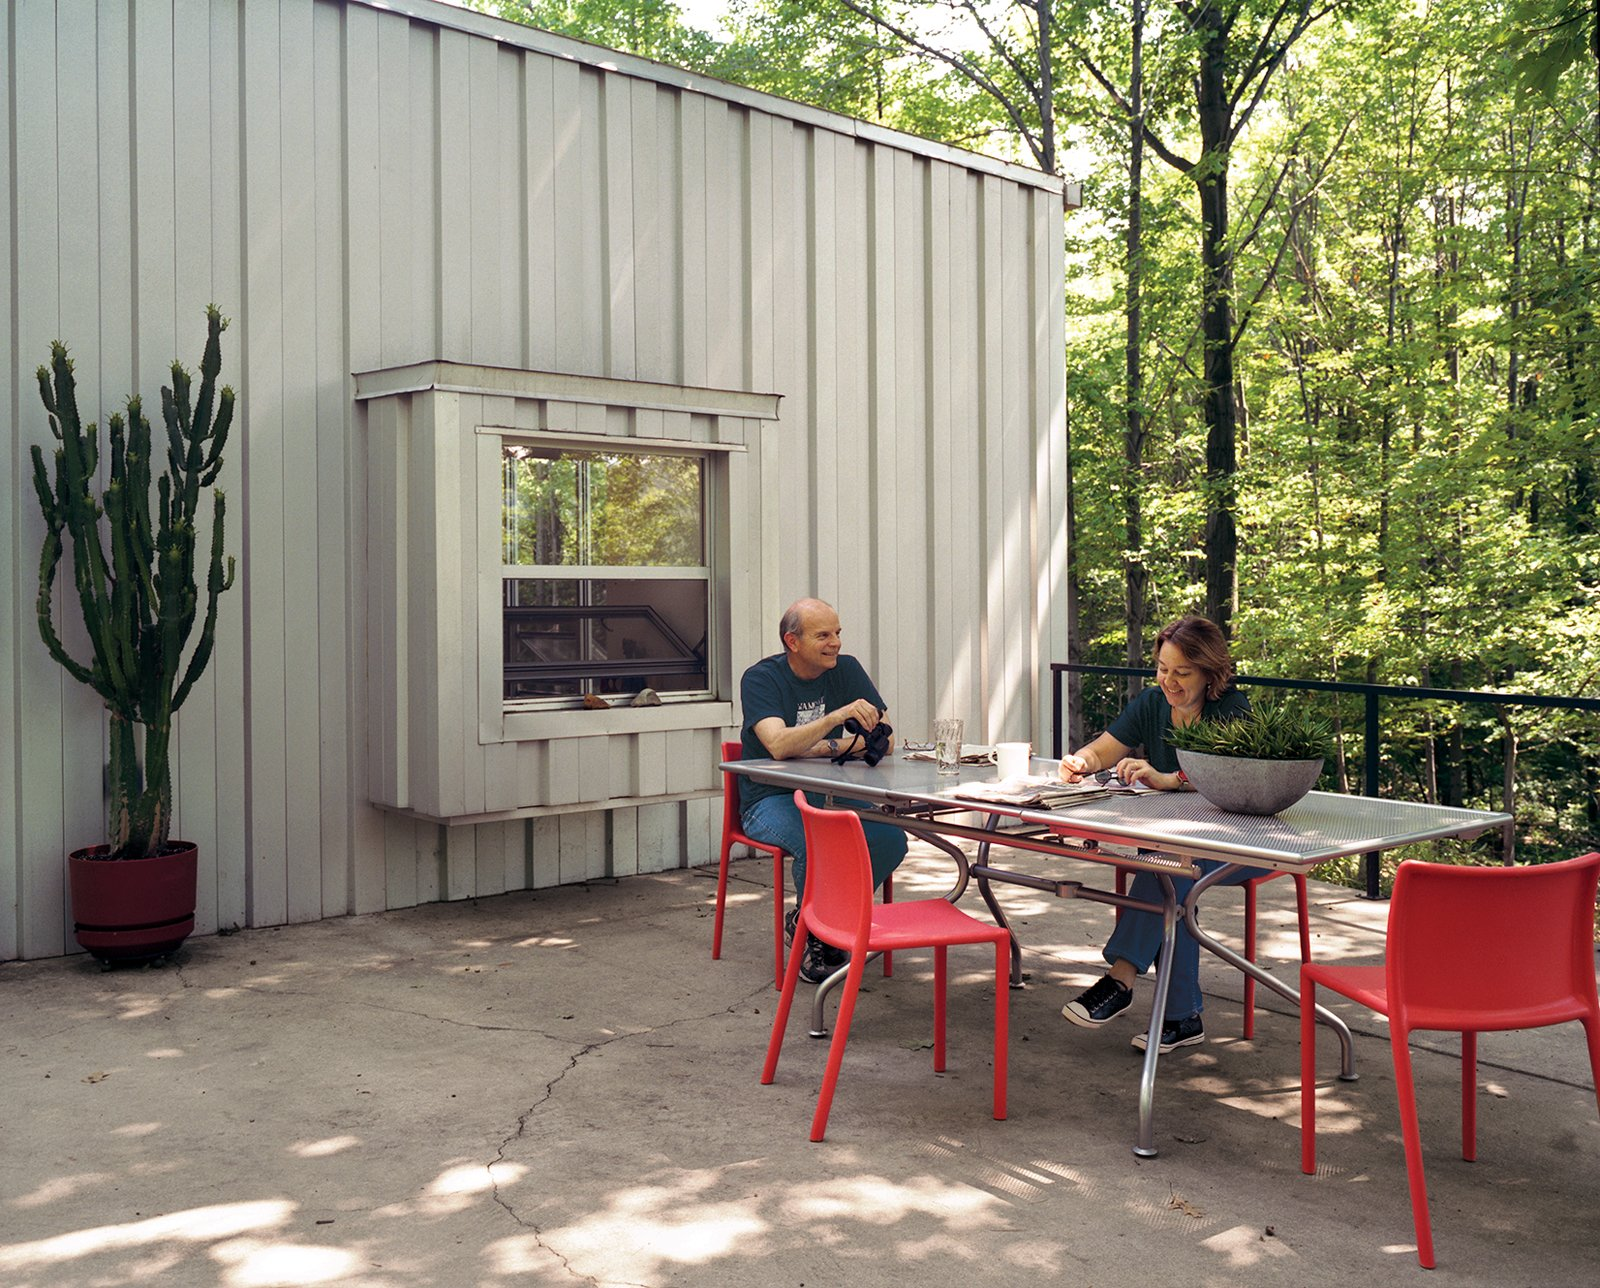 Compa and Cook relax on a patio at the western end of the house that overlooks a neighboring farm.